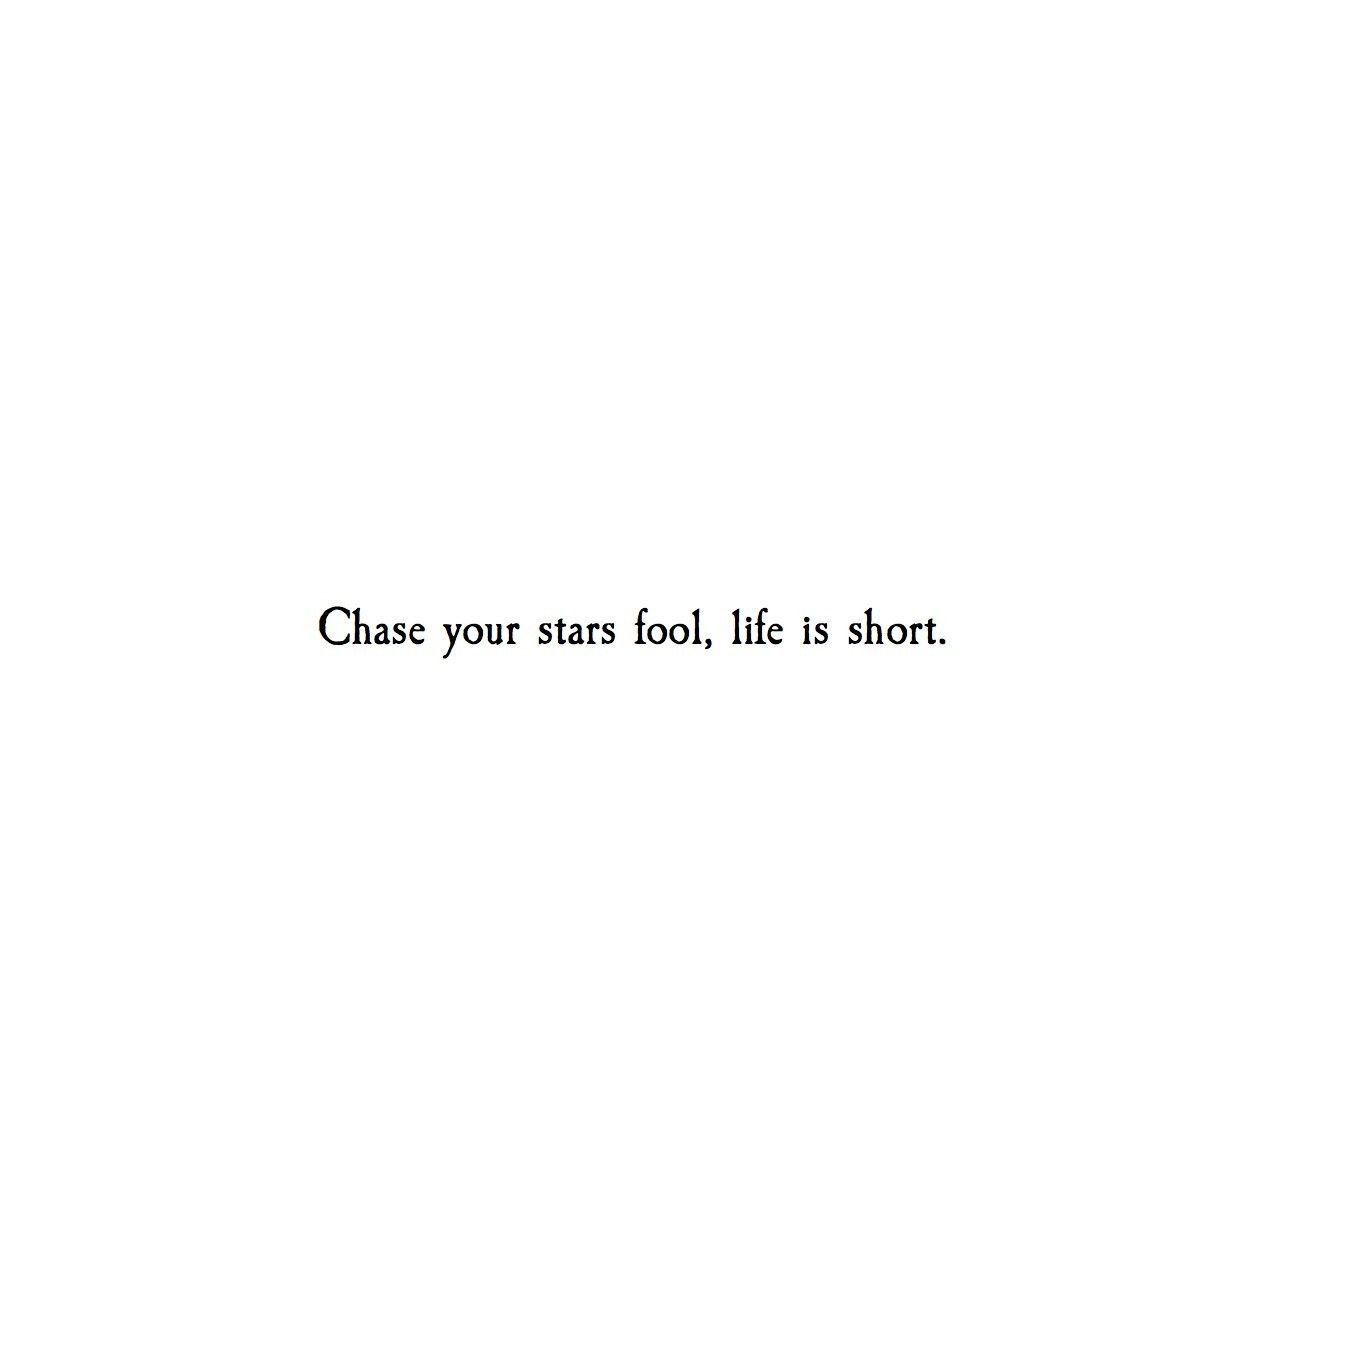 Short Celebrity Quotes About Life: 'Chase' @Atticuspoetry #Atticuspoetry #stars #life. This X